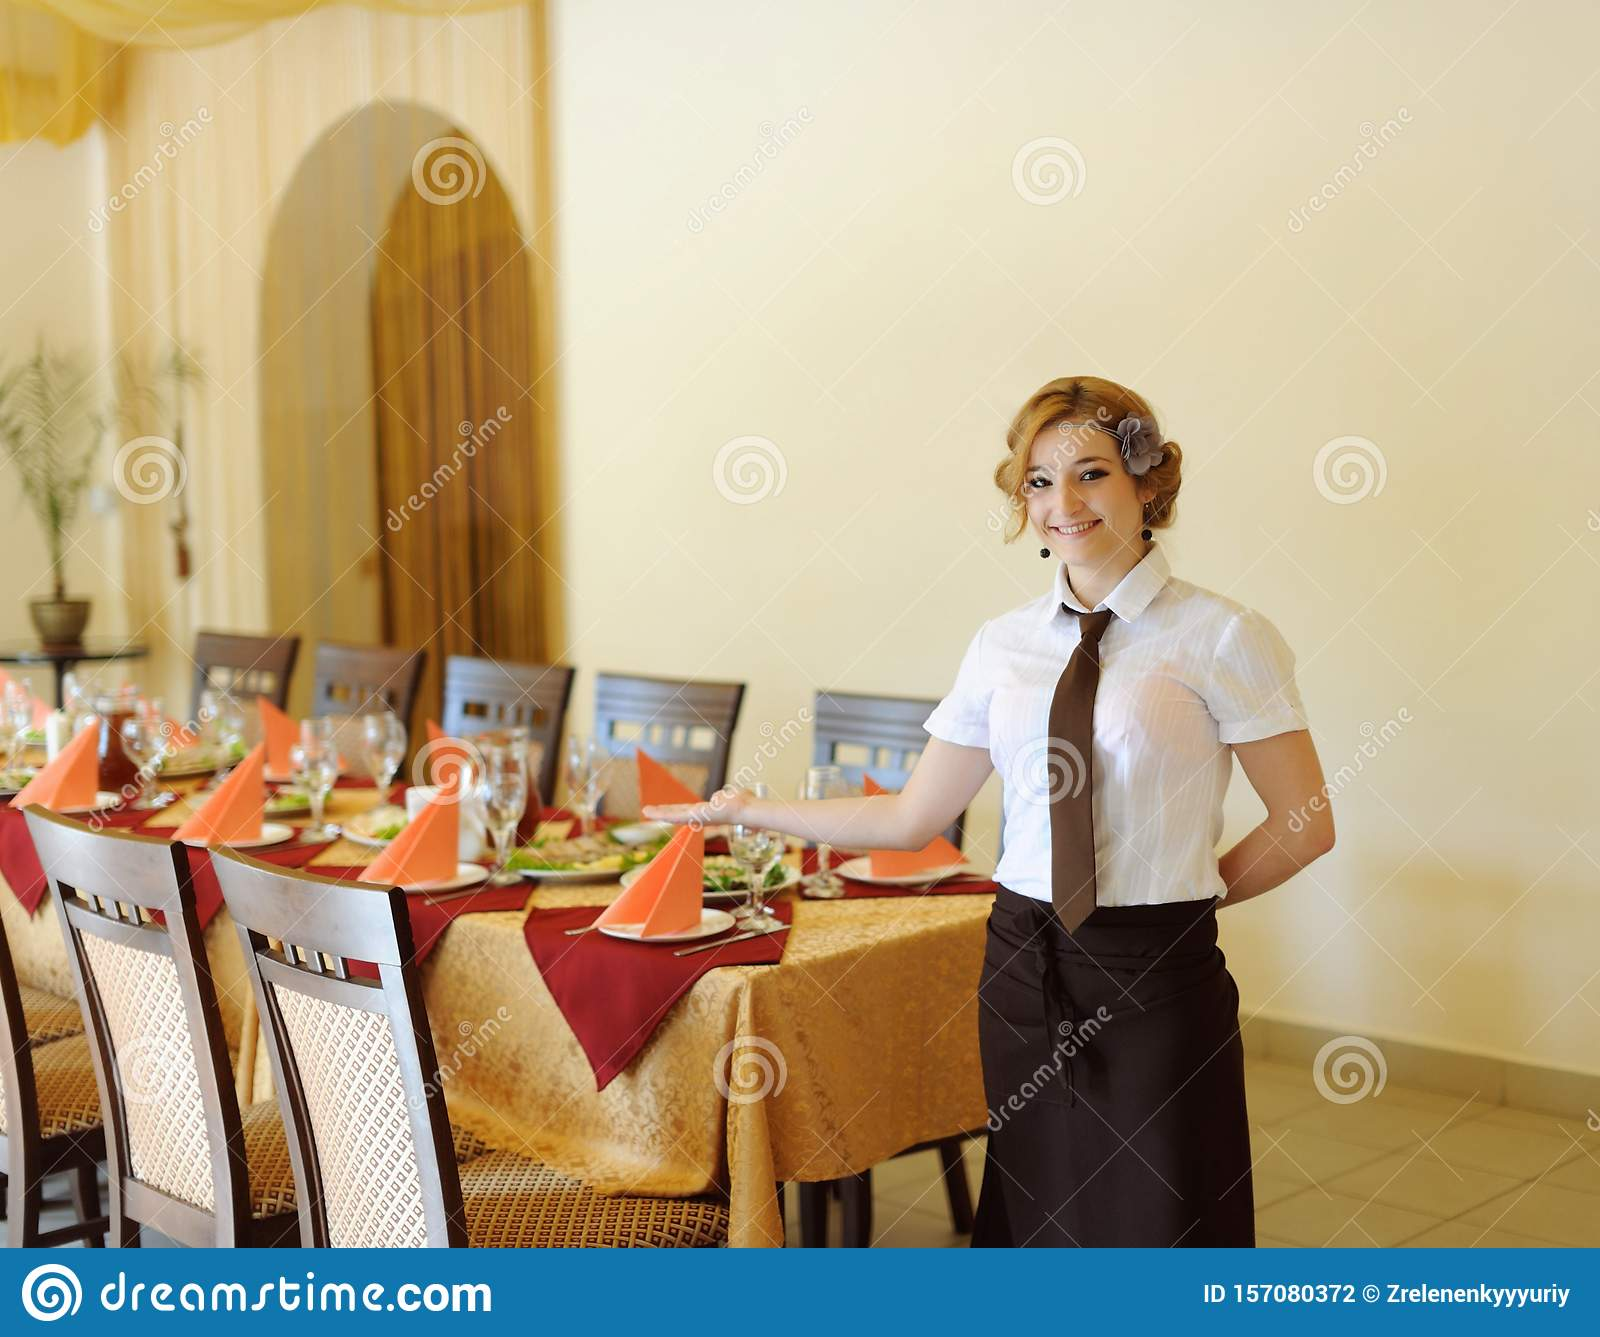 The Waiter In The Restaurant Stock Photo Image Of Industry Cook 157080372